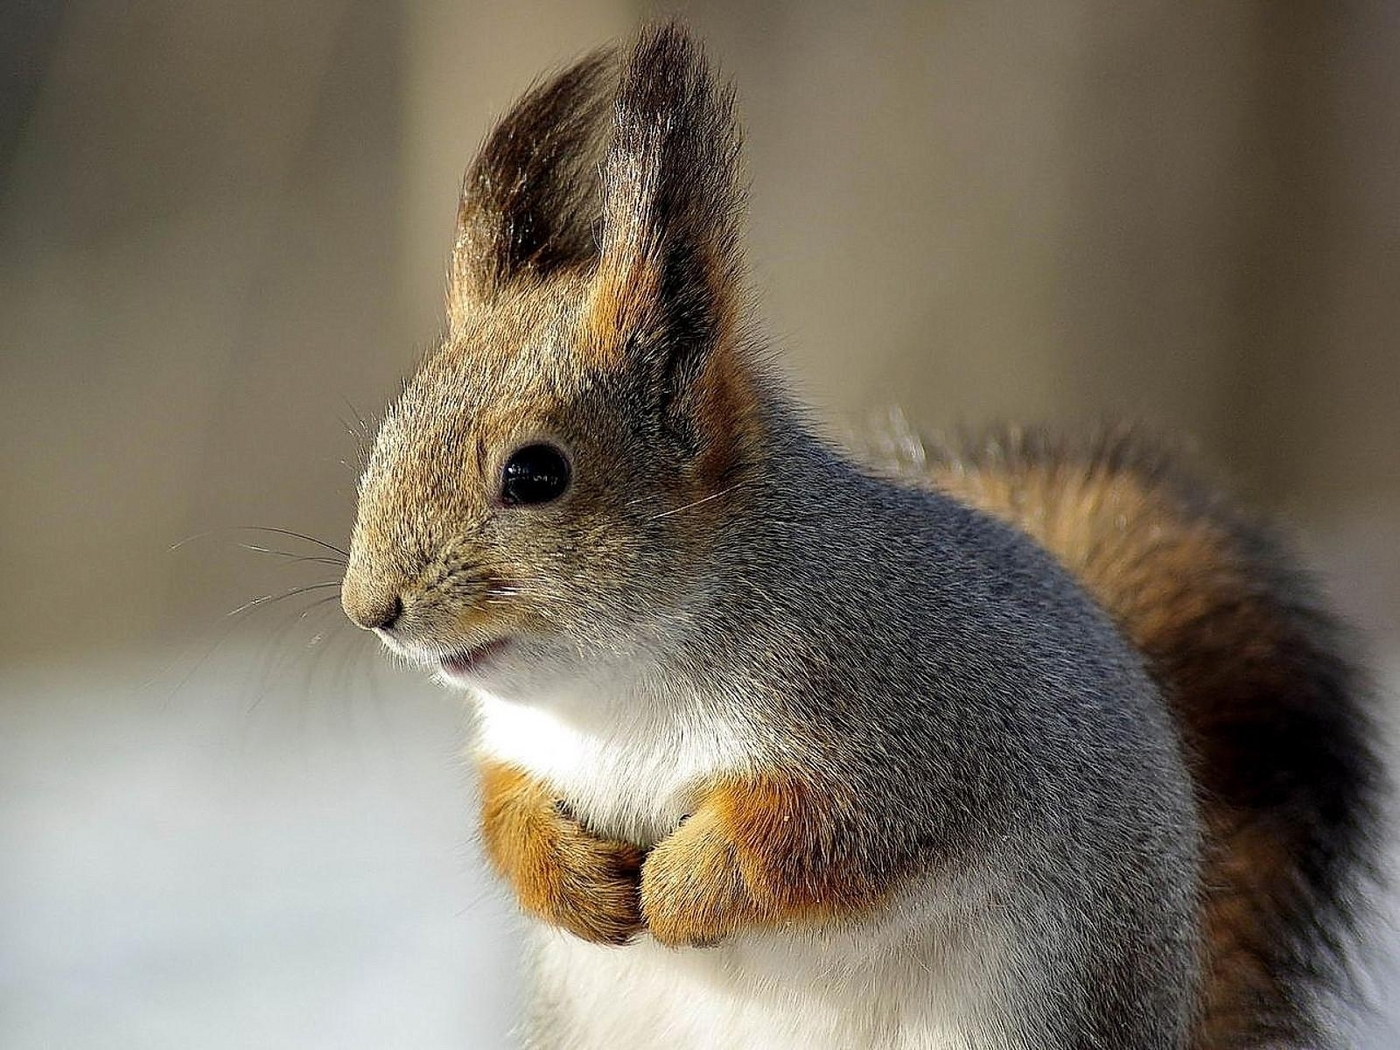 40590 download wallpaper Animals, Squirrel screensavers and pictures for free